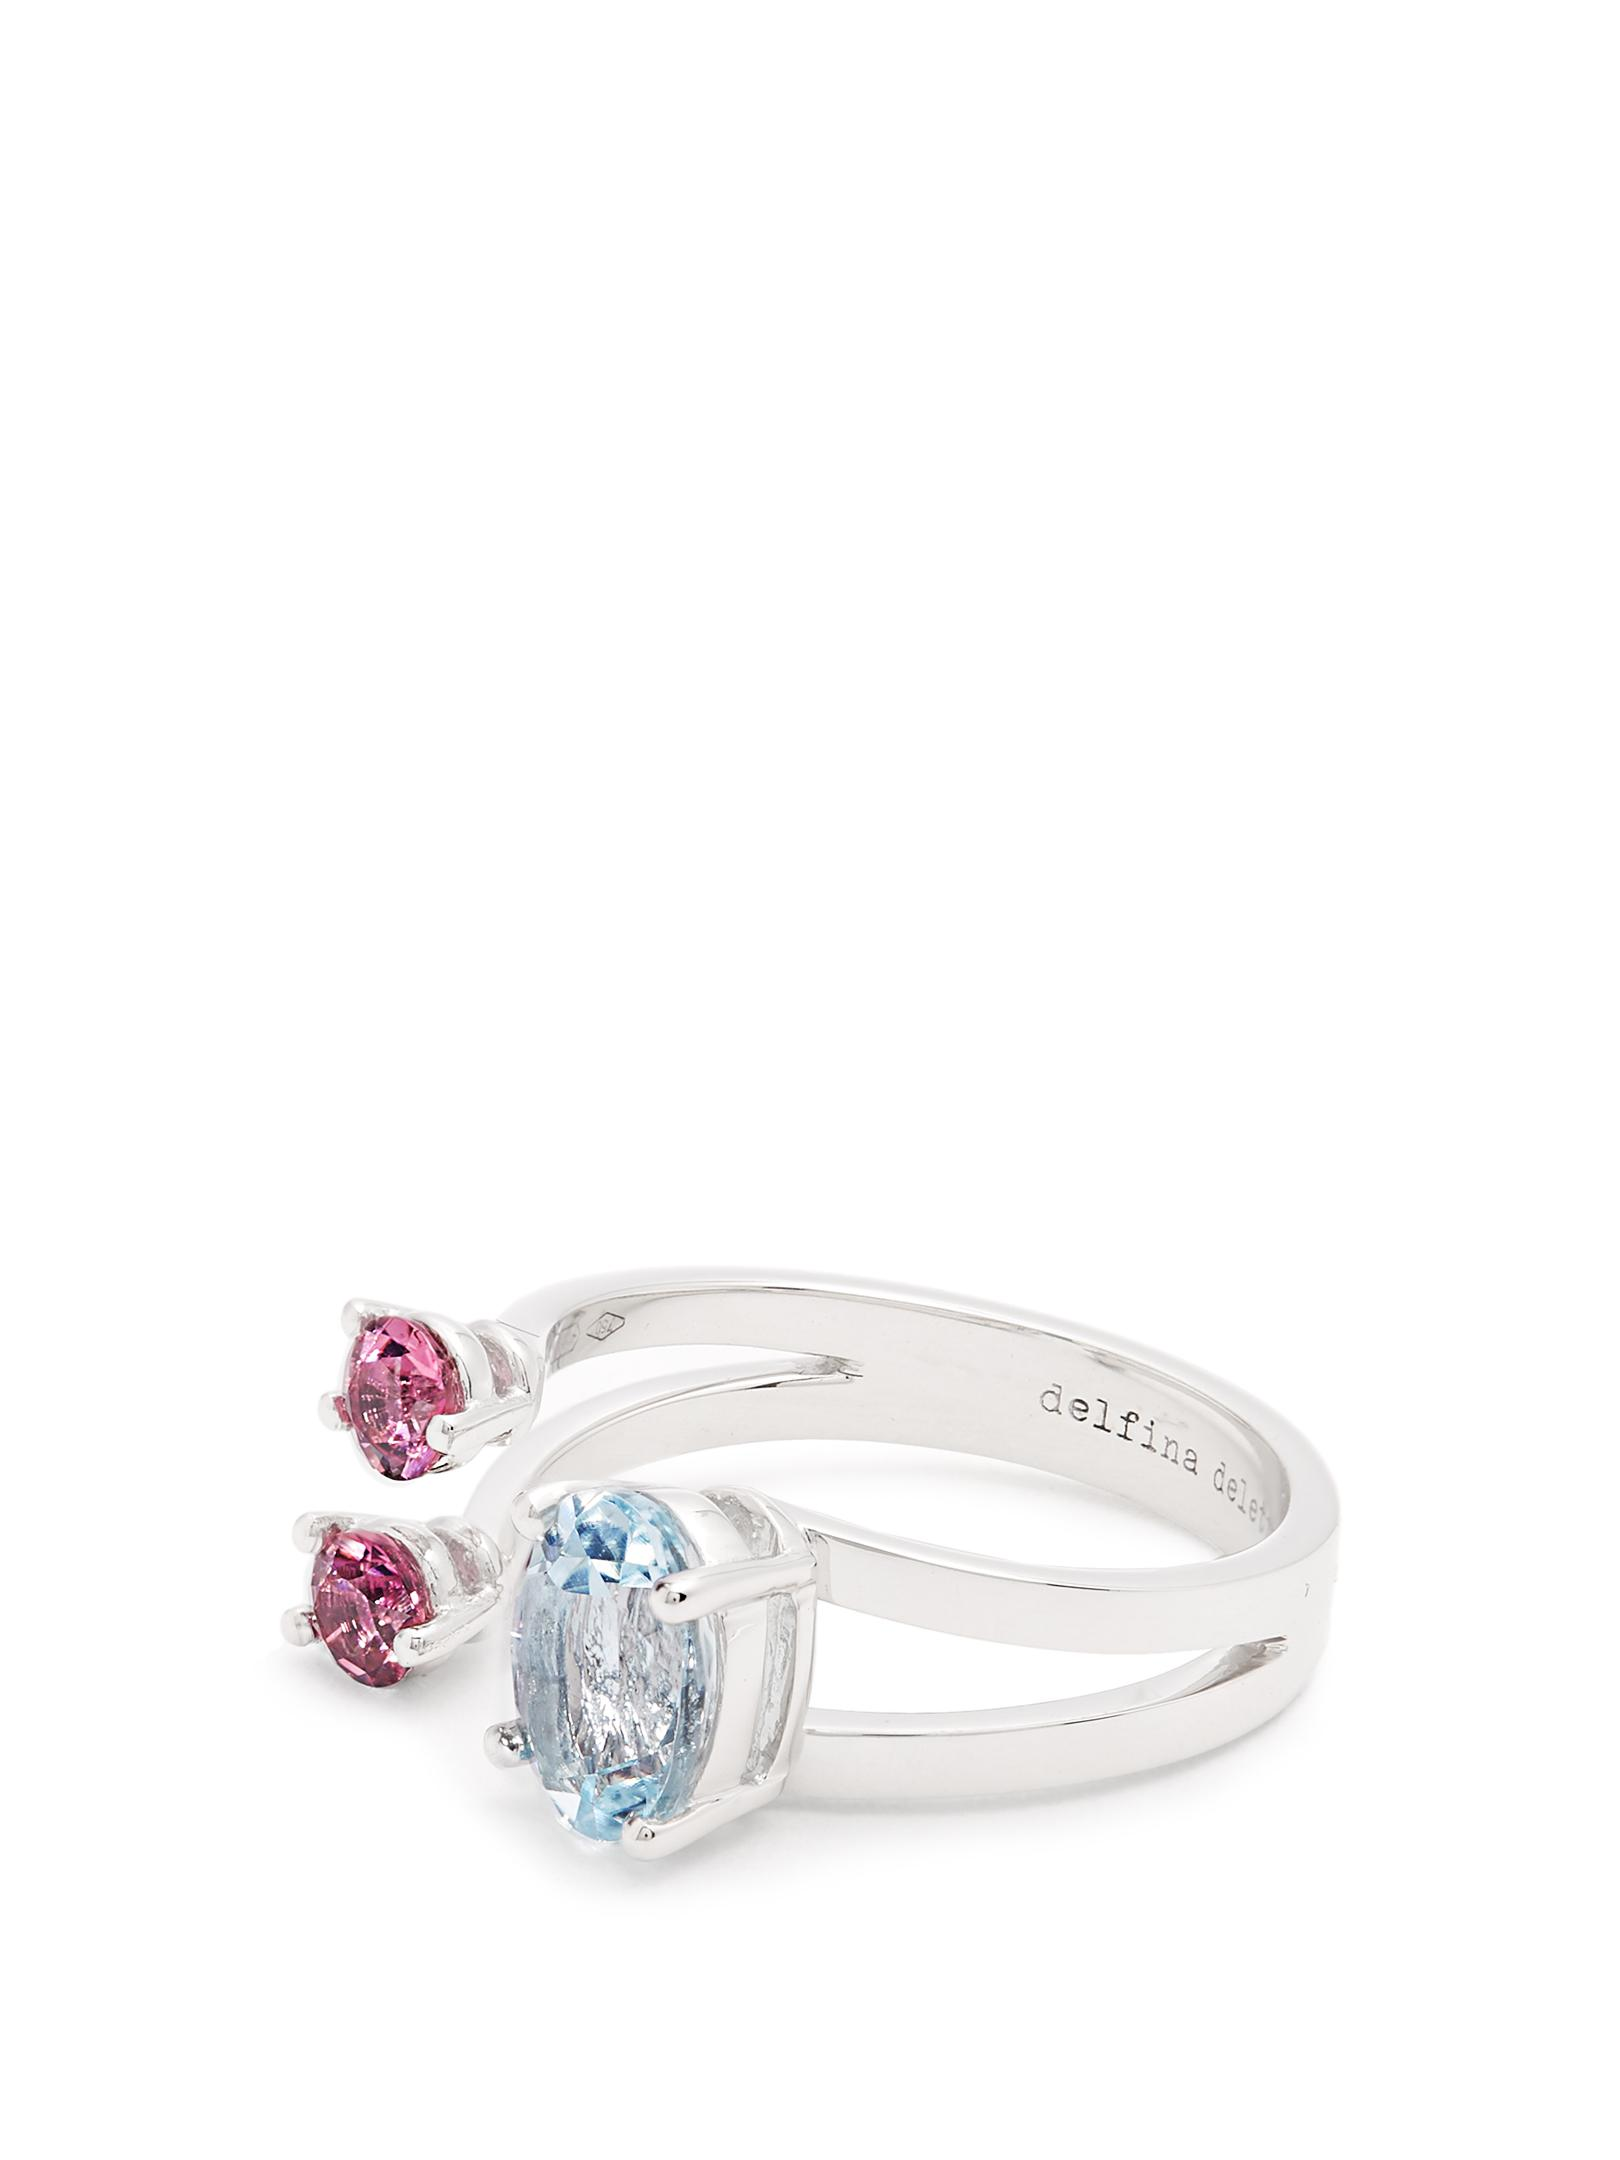 Delfina Delettrez 18-karat White Gold, Aquamarine And Tourmaline Ring